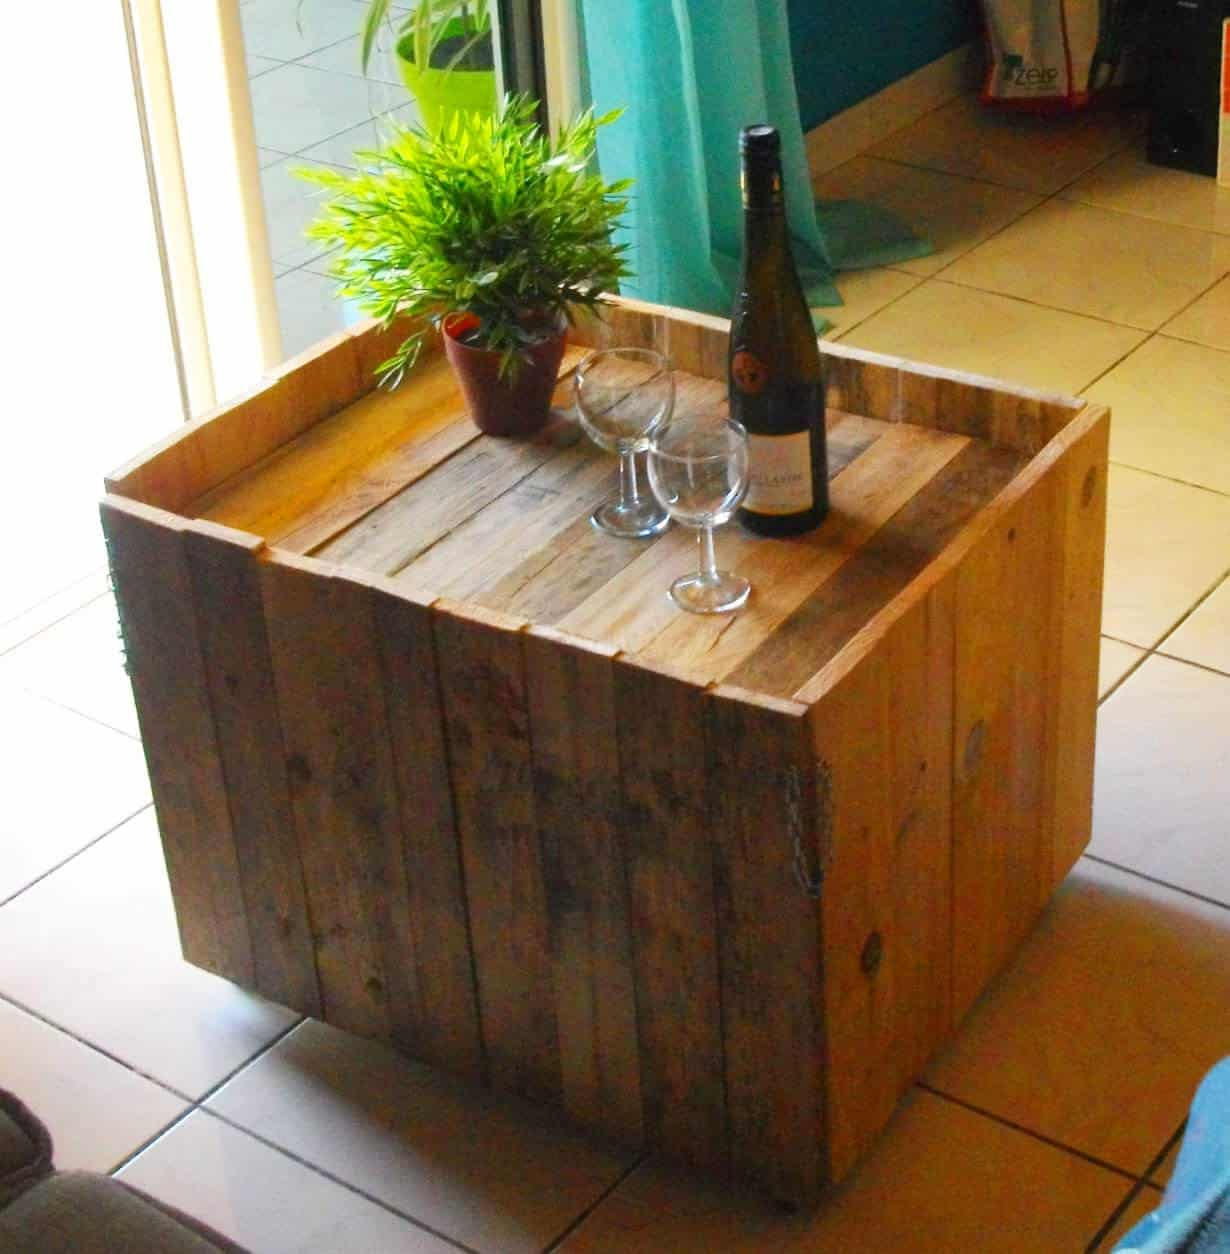 Diy pdf tutoriel table basse modulabe 1001 pallets gratuit - Faire table basse en palette ...